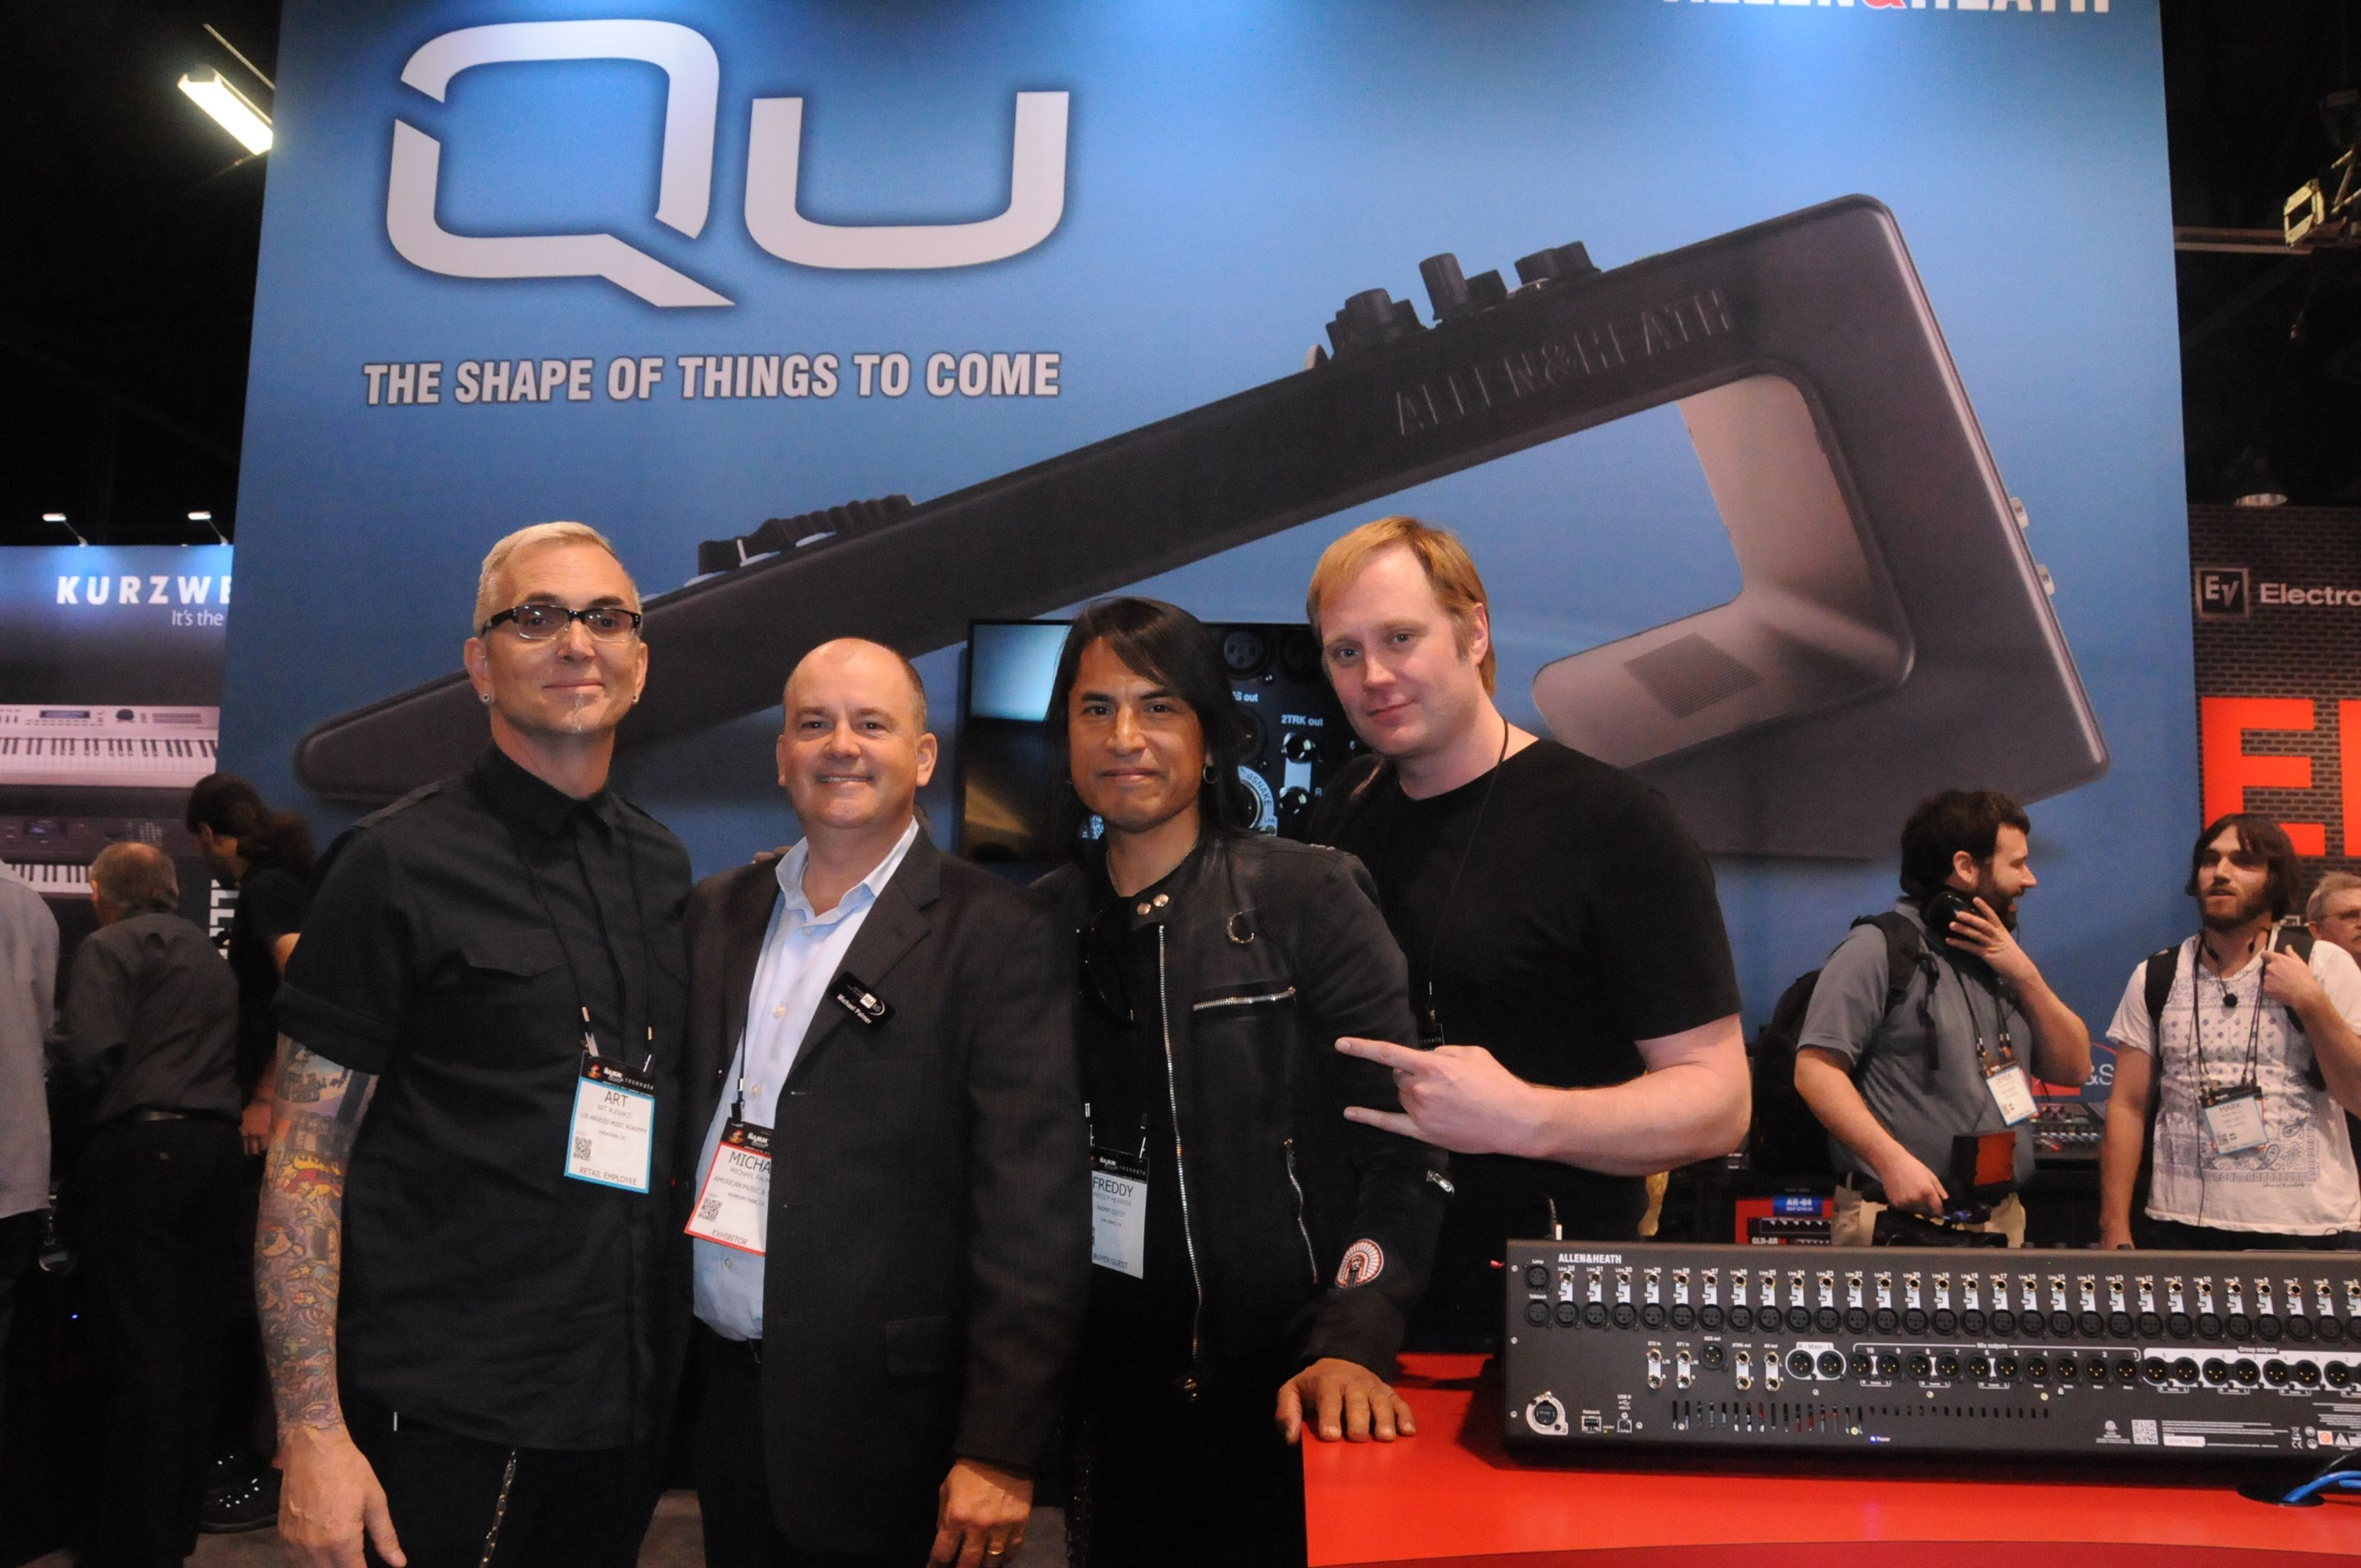 Members of the band Everclear made an appearance at the American Music and Sound booth during NAMM 2015 www.xibeo.com 805.604.4409